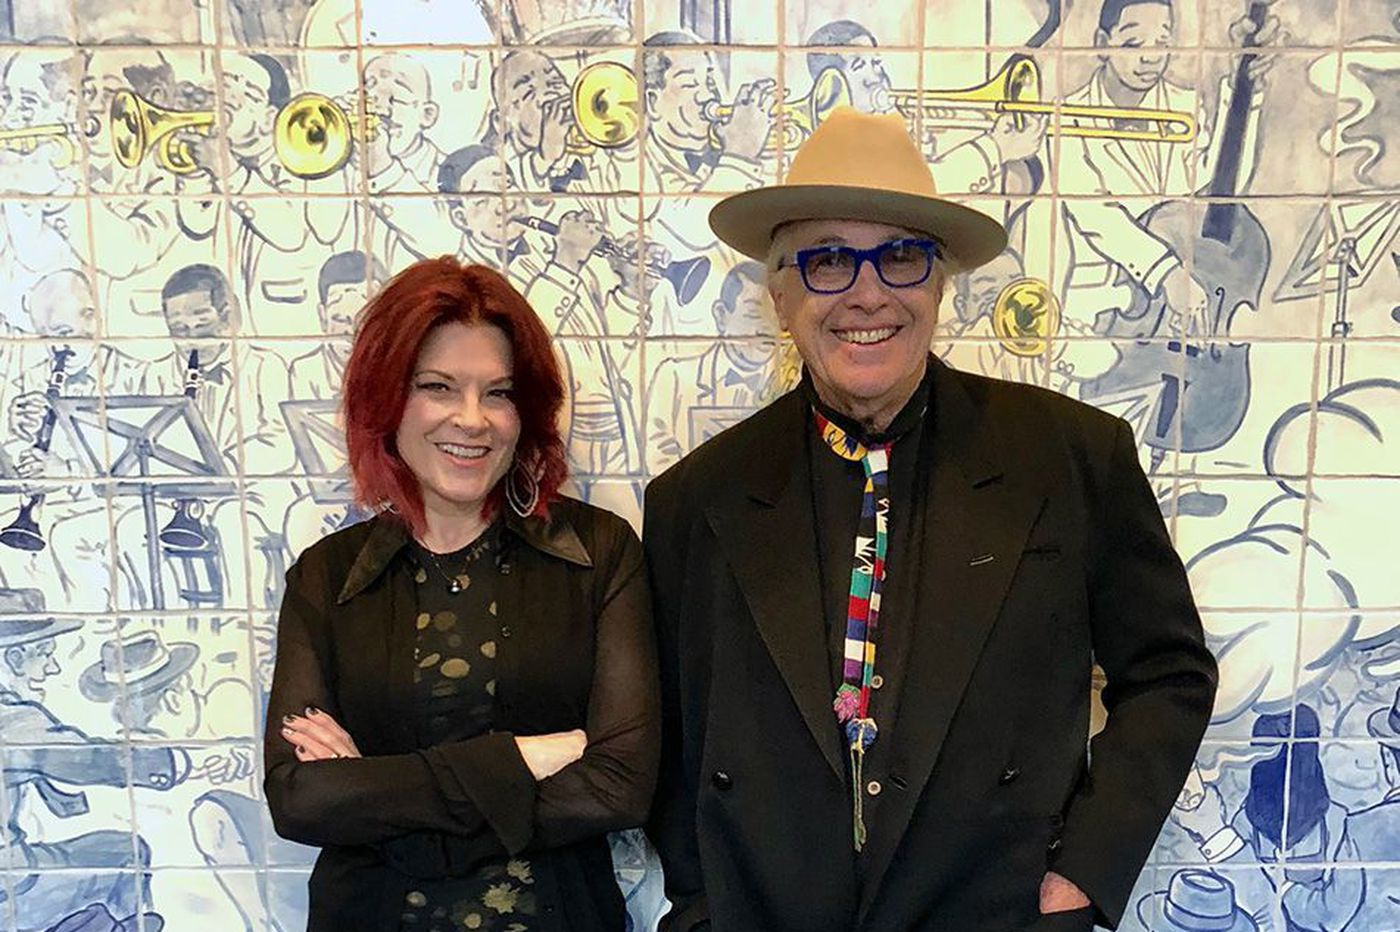 Rosanne Cash, Ry Cooder, and the long shadow of the Man in Black